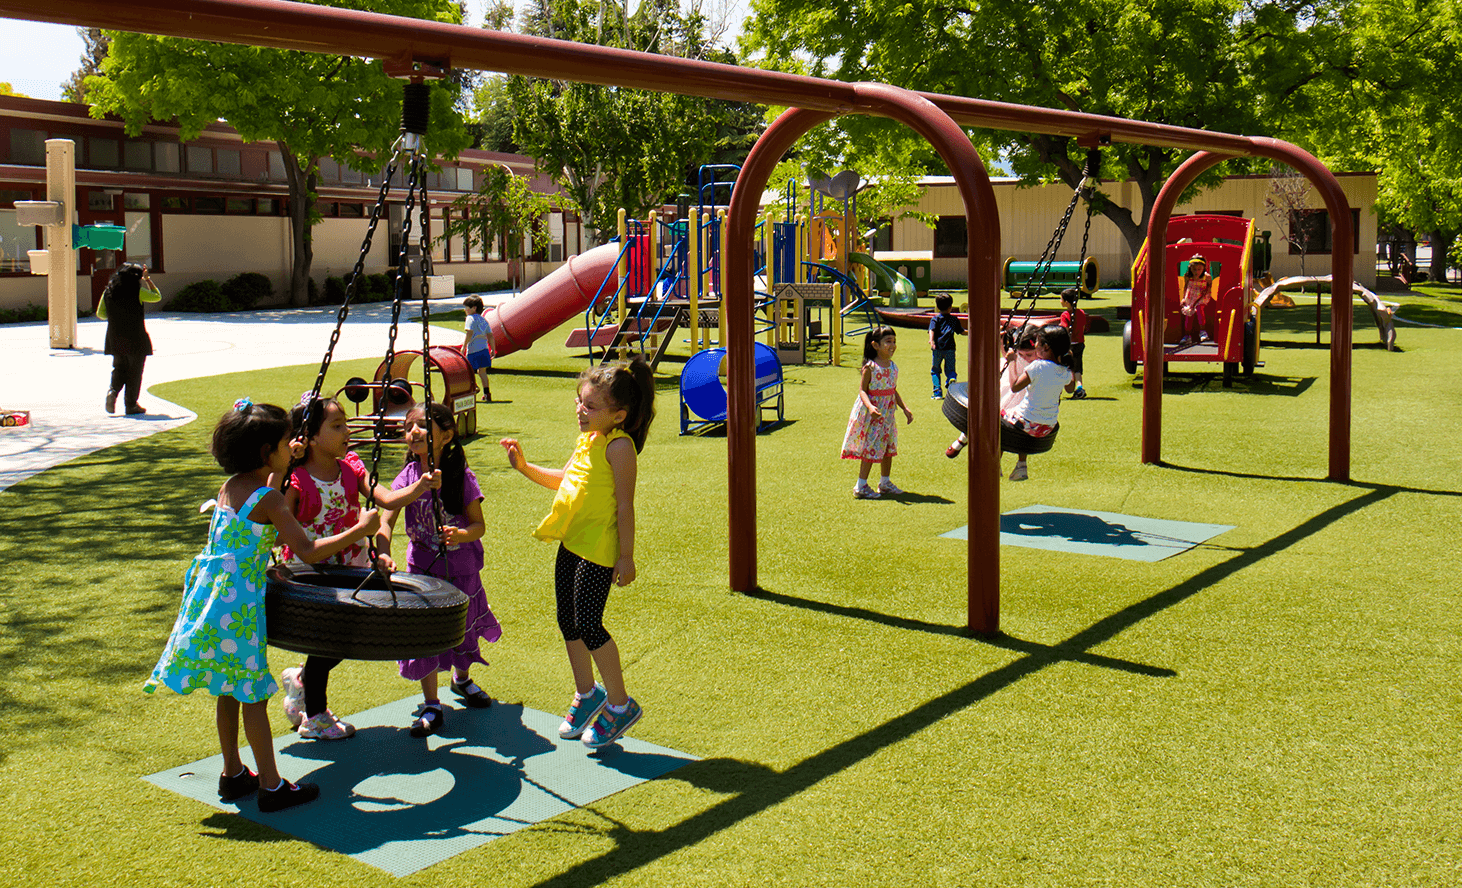 Playground Swing | Challenger School - Strawberry Park | Private School In San Jose, California